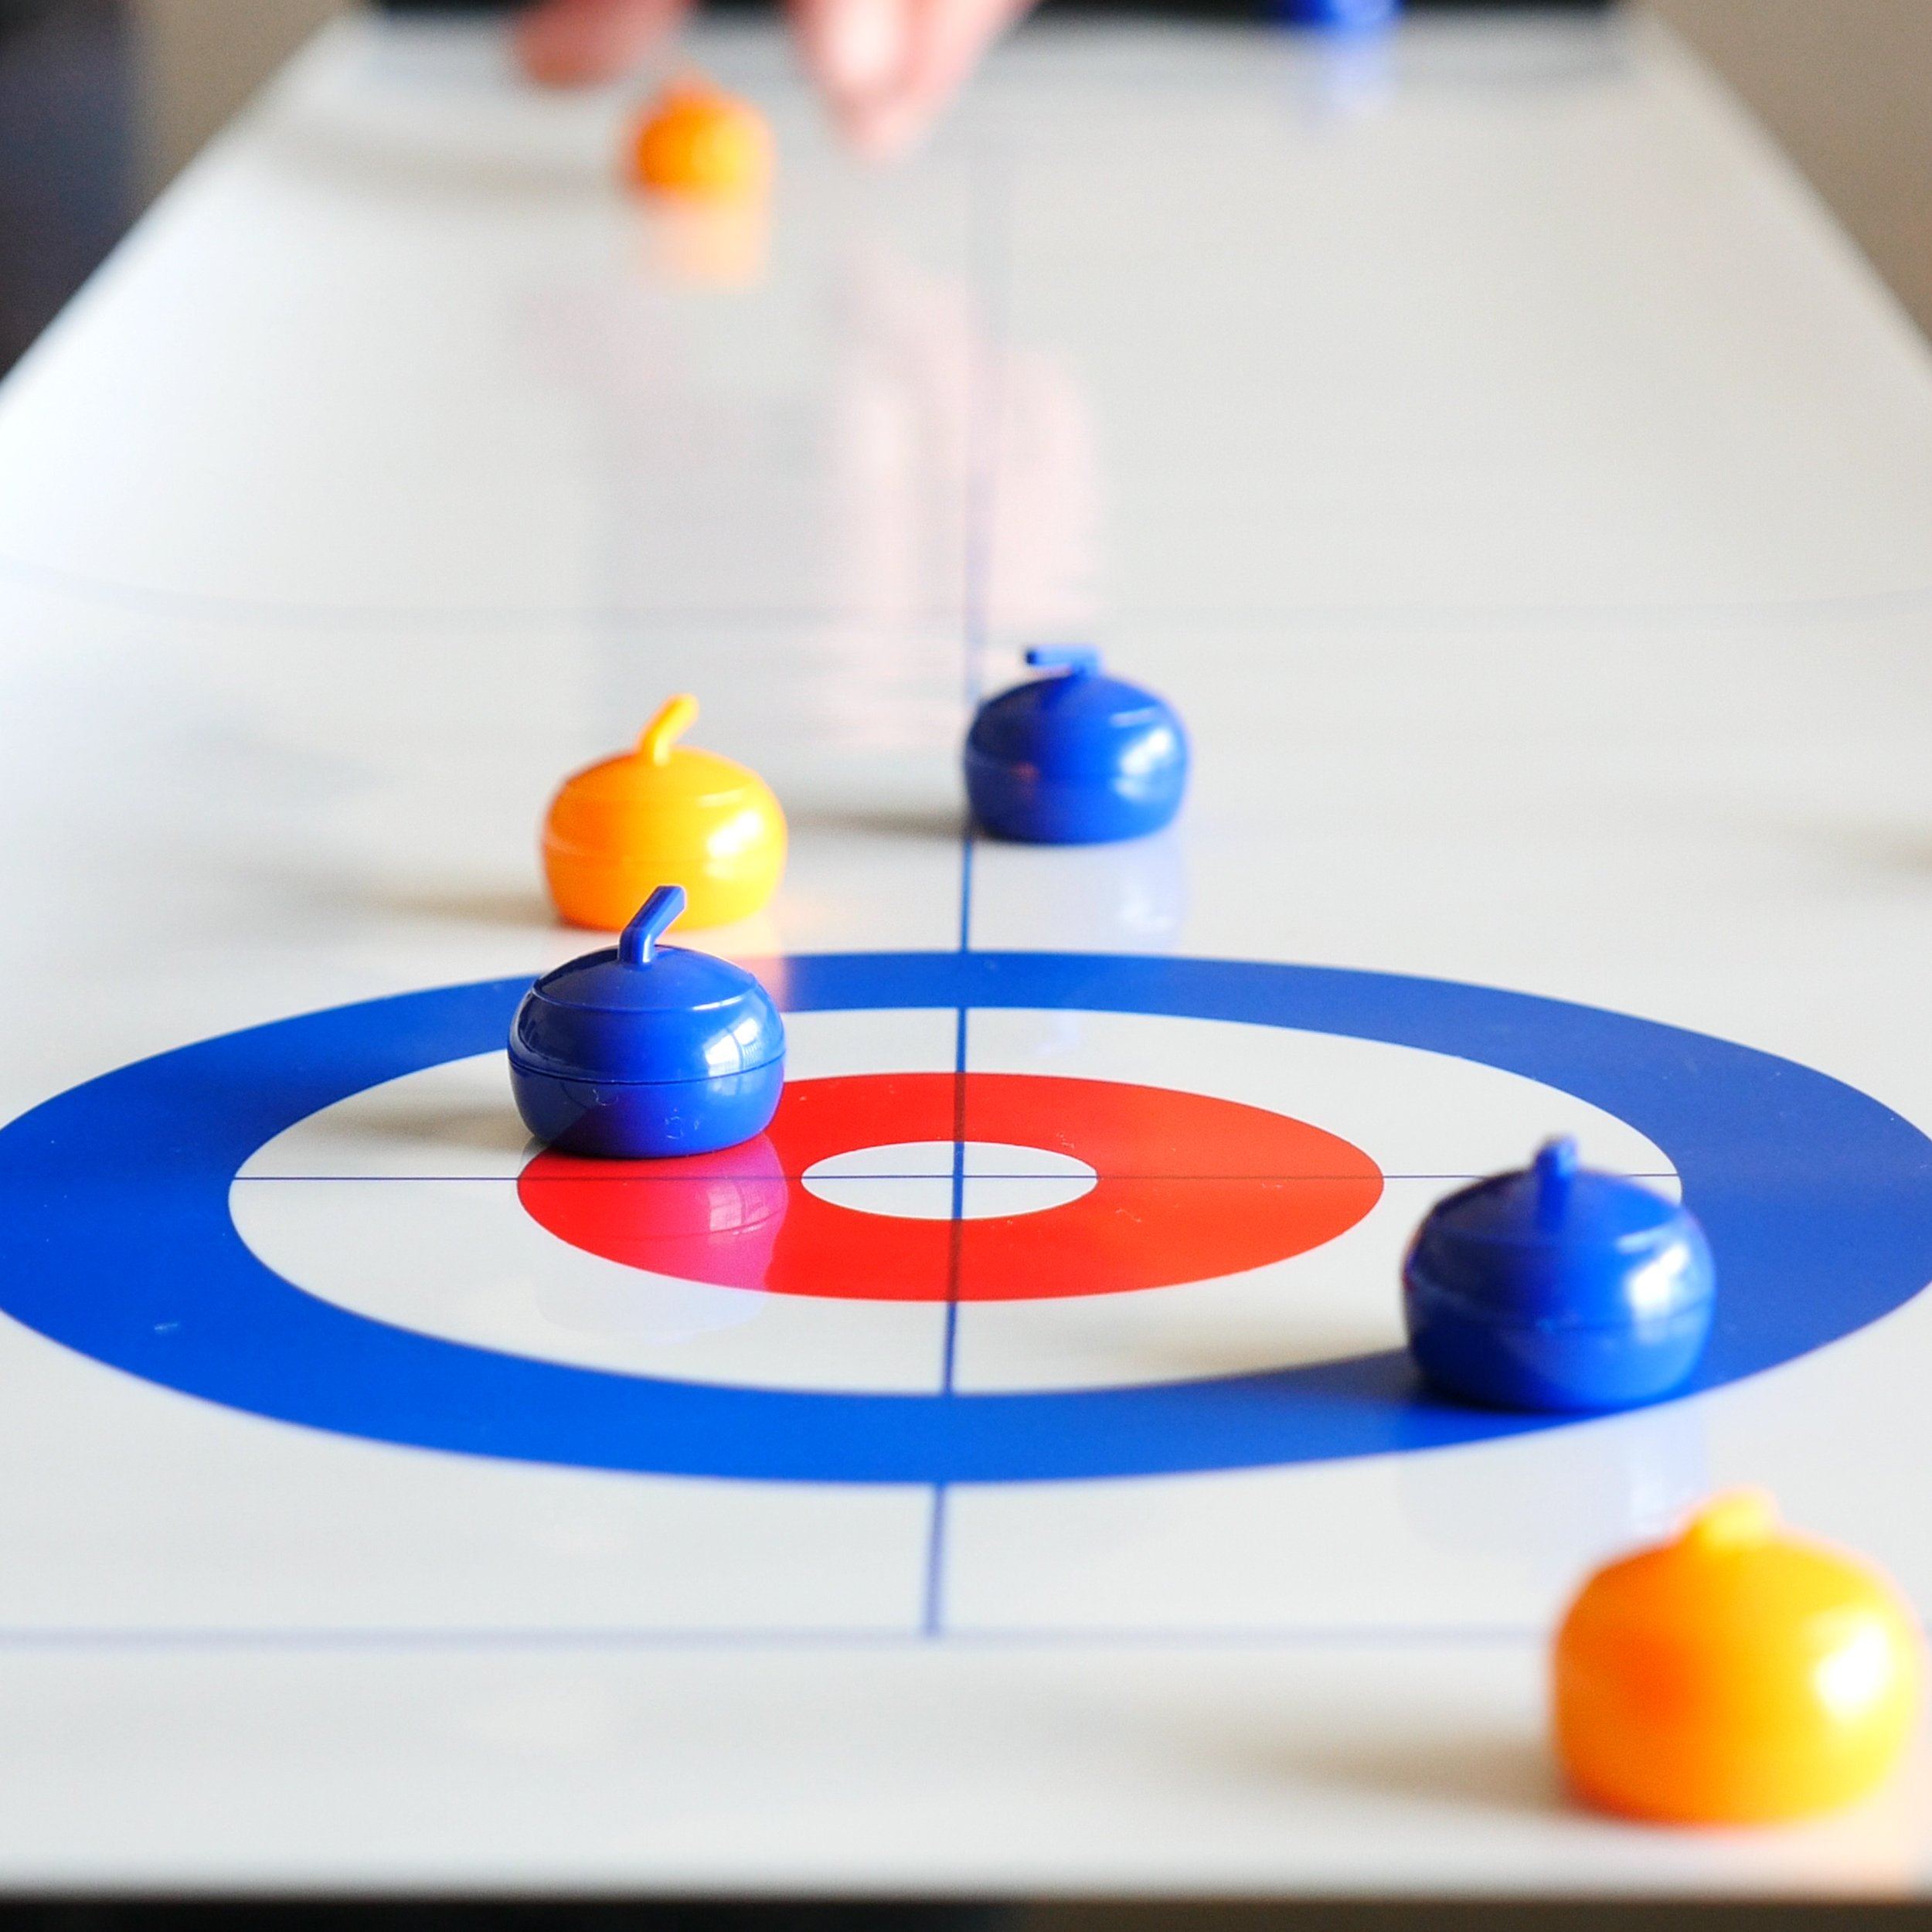 【The last day】【50% OFF】Curling Game(Shuffleboard) - Tabletop Game